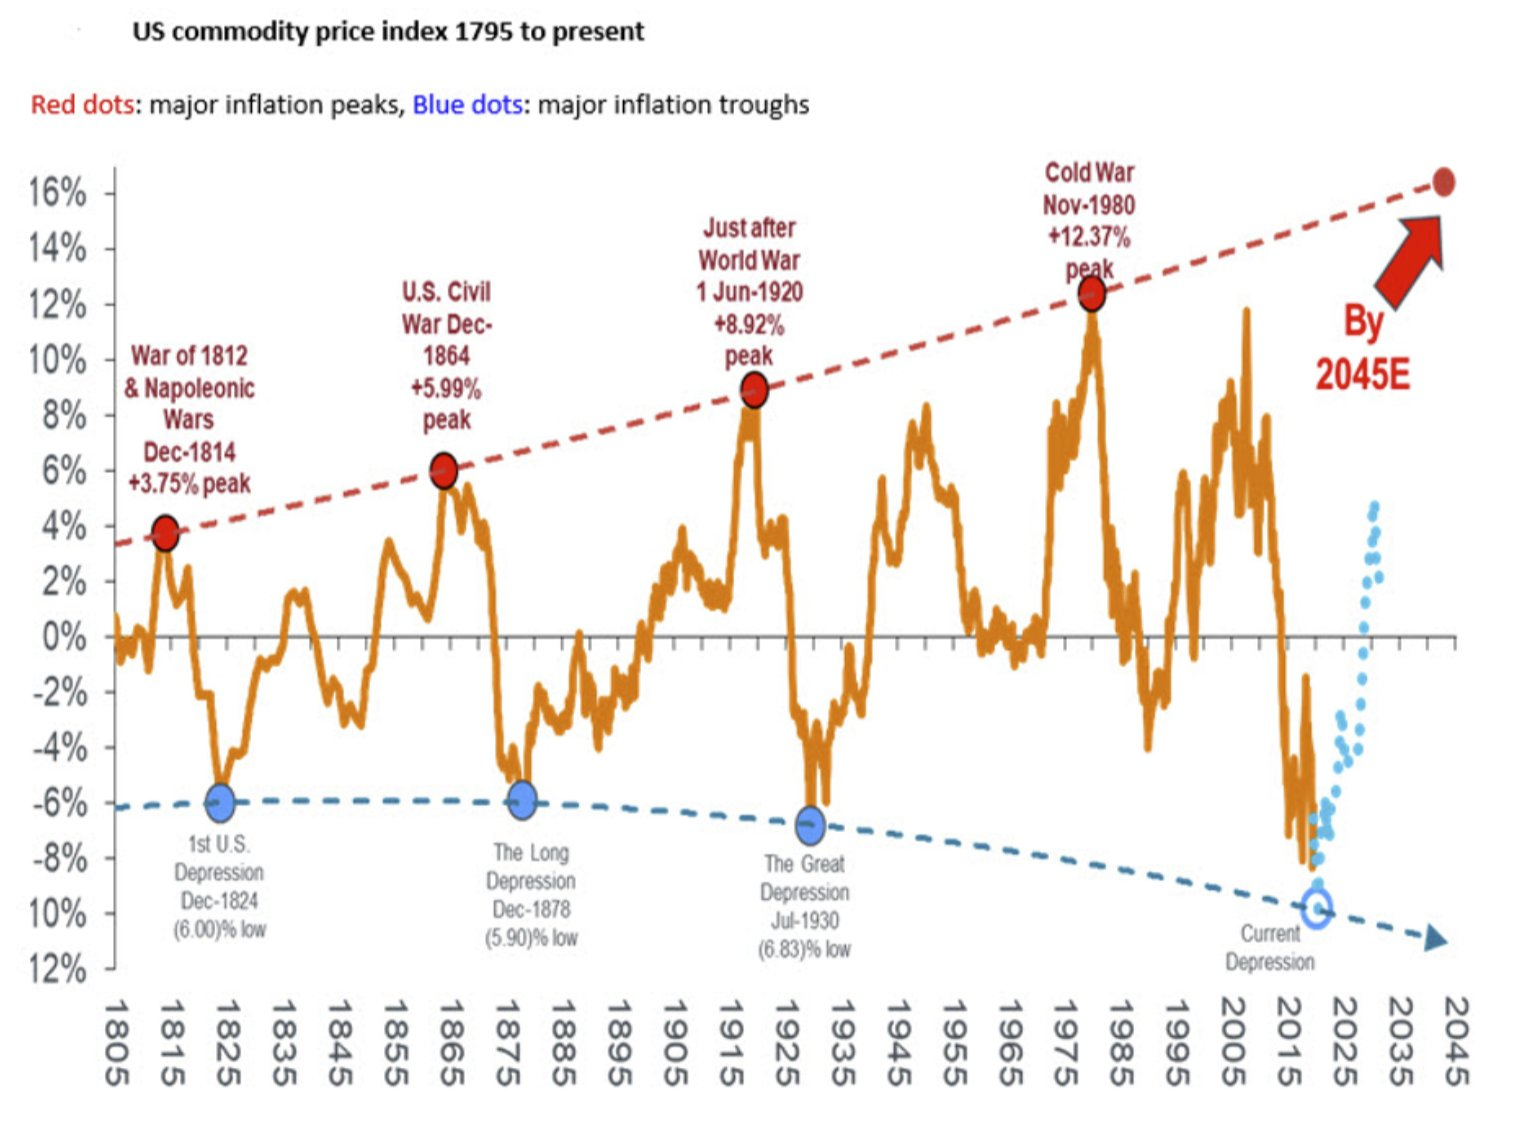 200 year commodity price chart visualises current inflationary trough